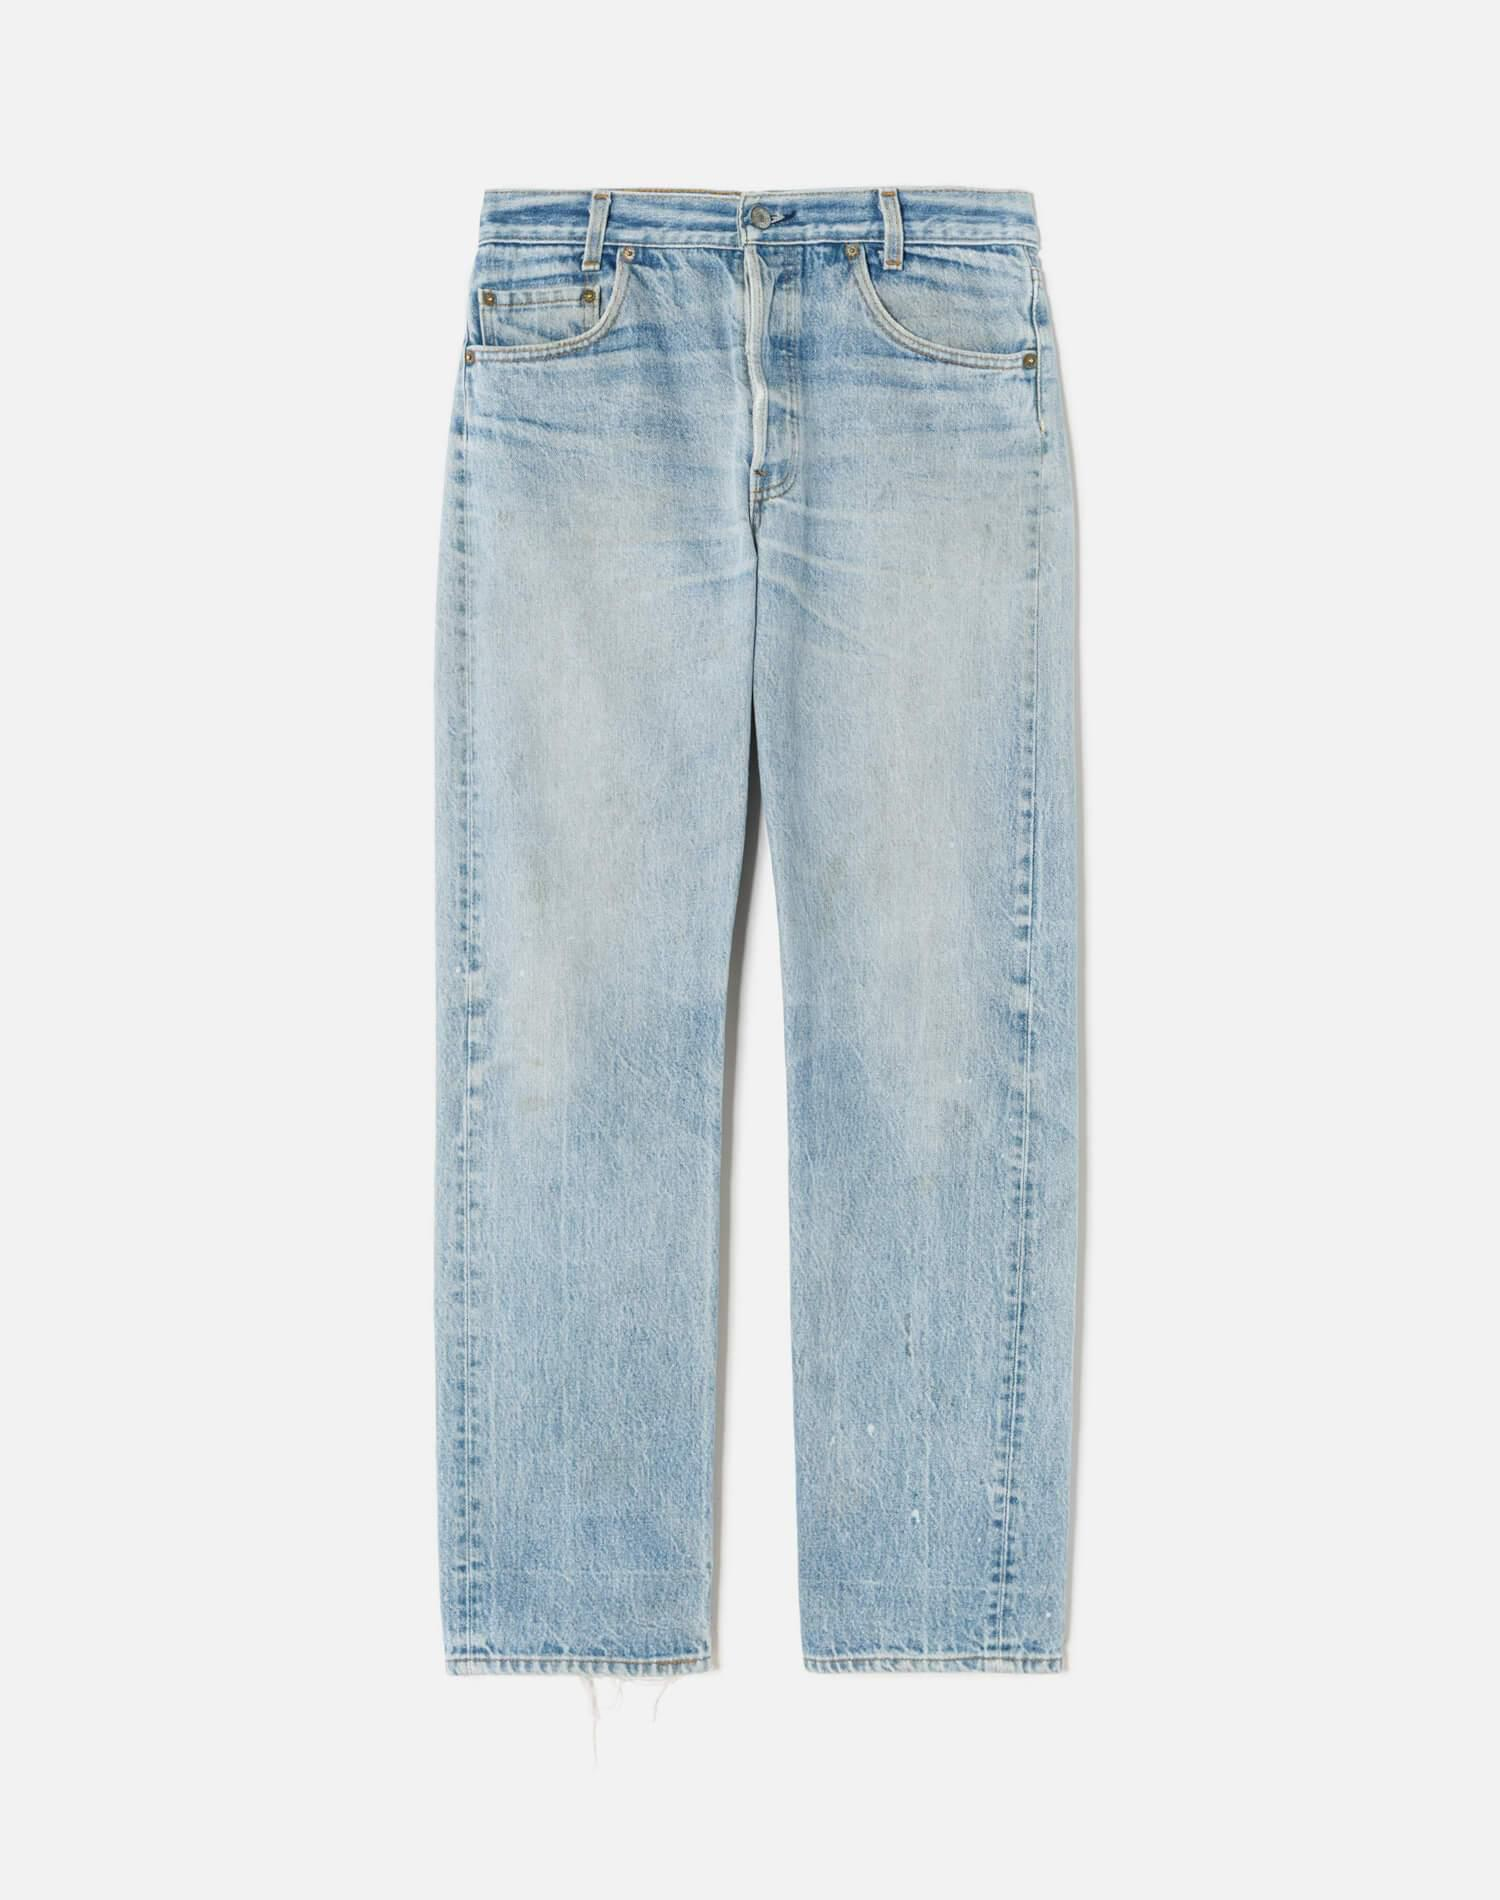 80s/90s Vintage Levi's 501 High Rise Relaxed Size 28 - #239